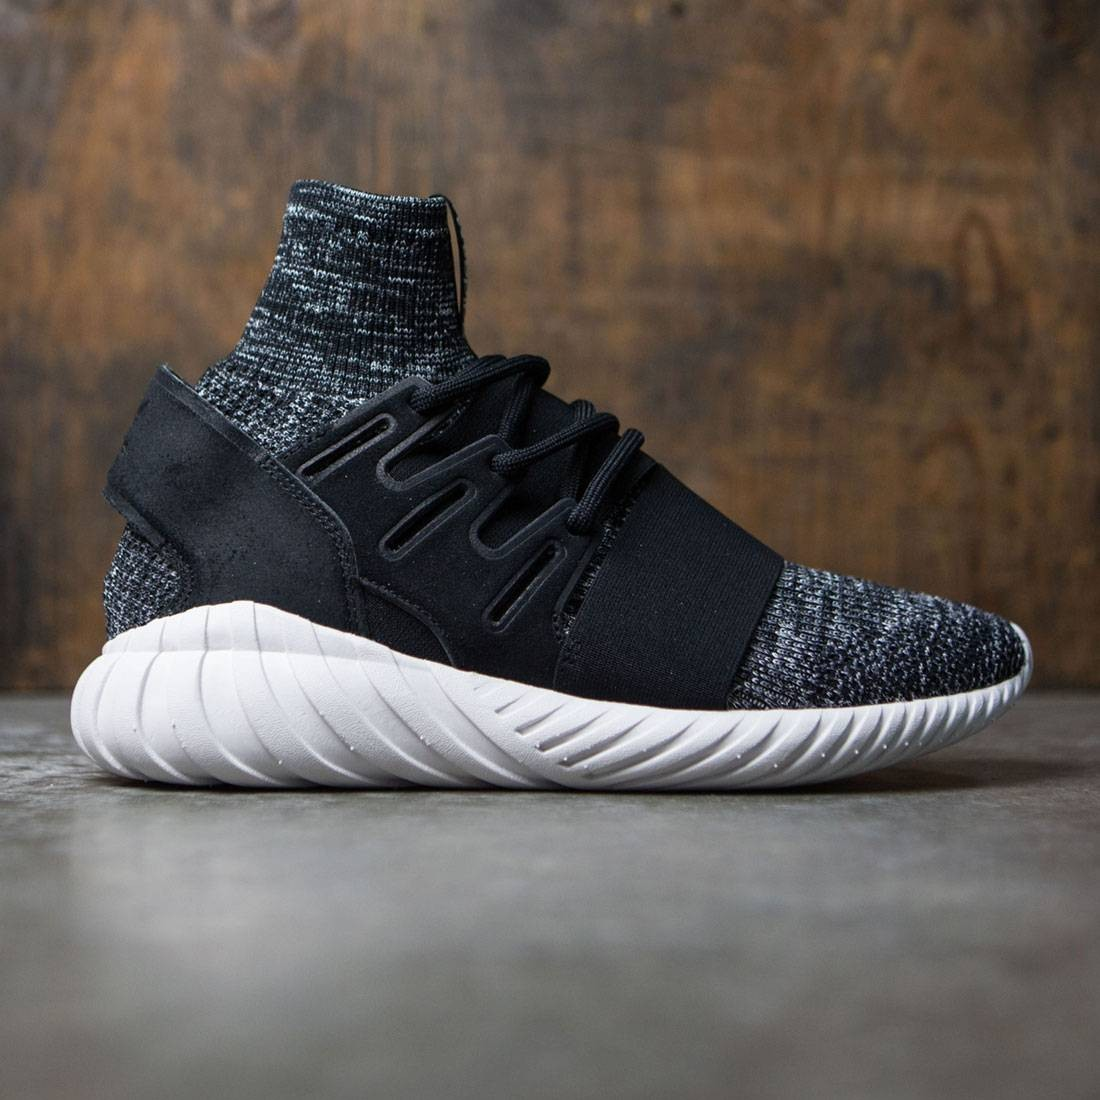 a72e433a8e30 Adidas Men Tubular Doom Primeknit black granite vintage white